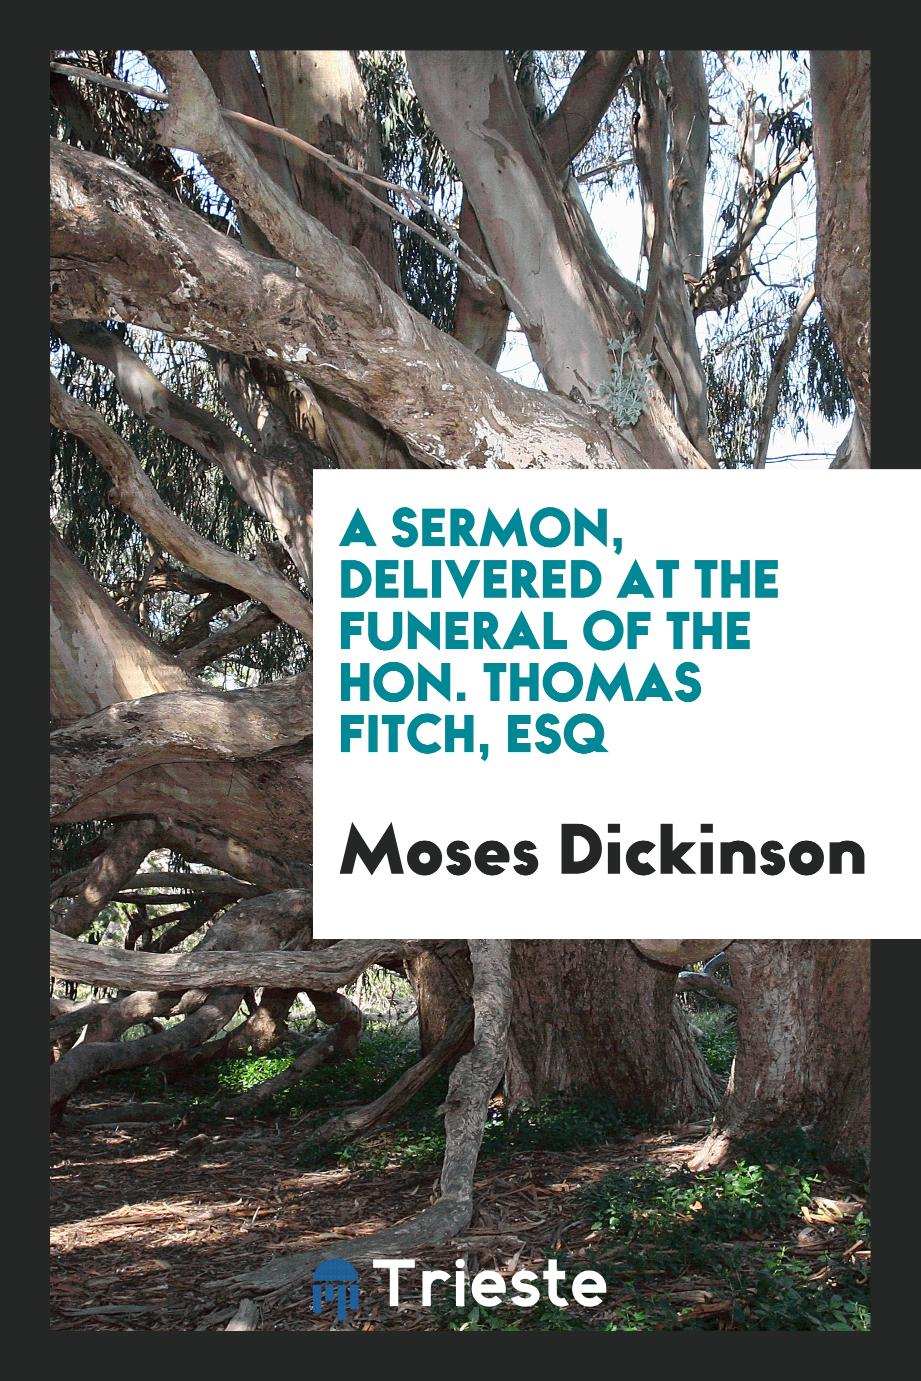 A Sermon, Delivered at the Funeral of the Hon. Thomas Fitch, Esq